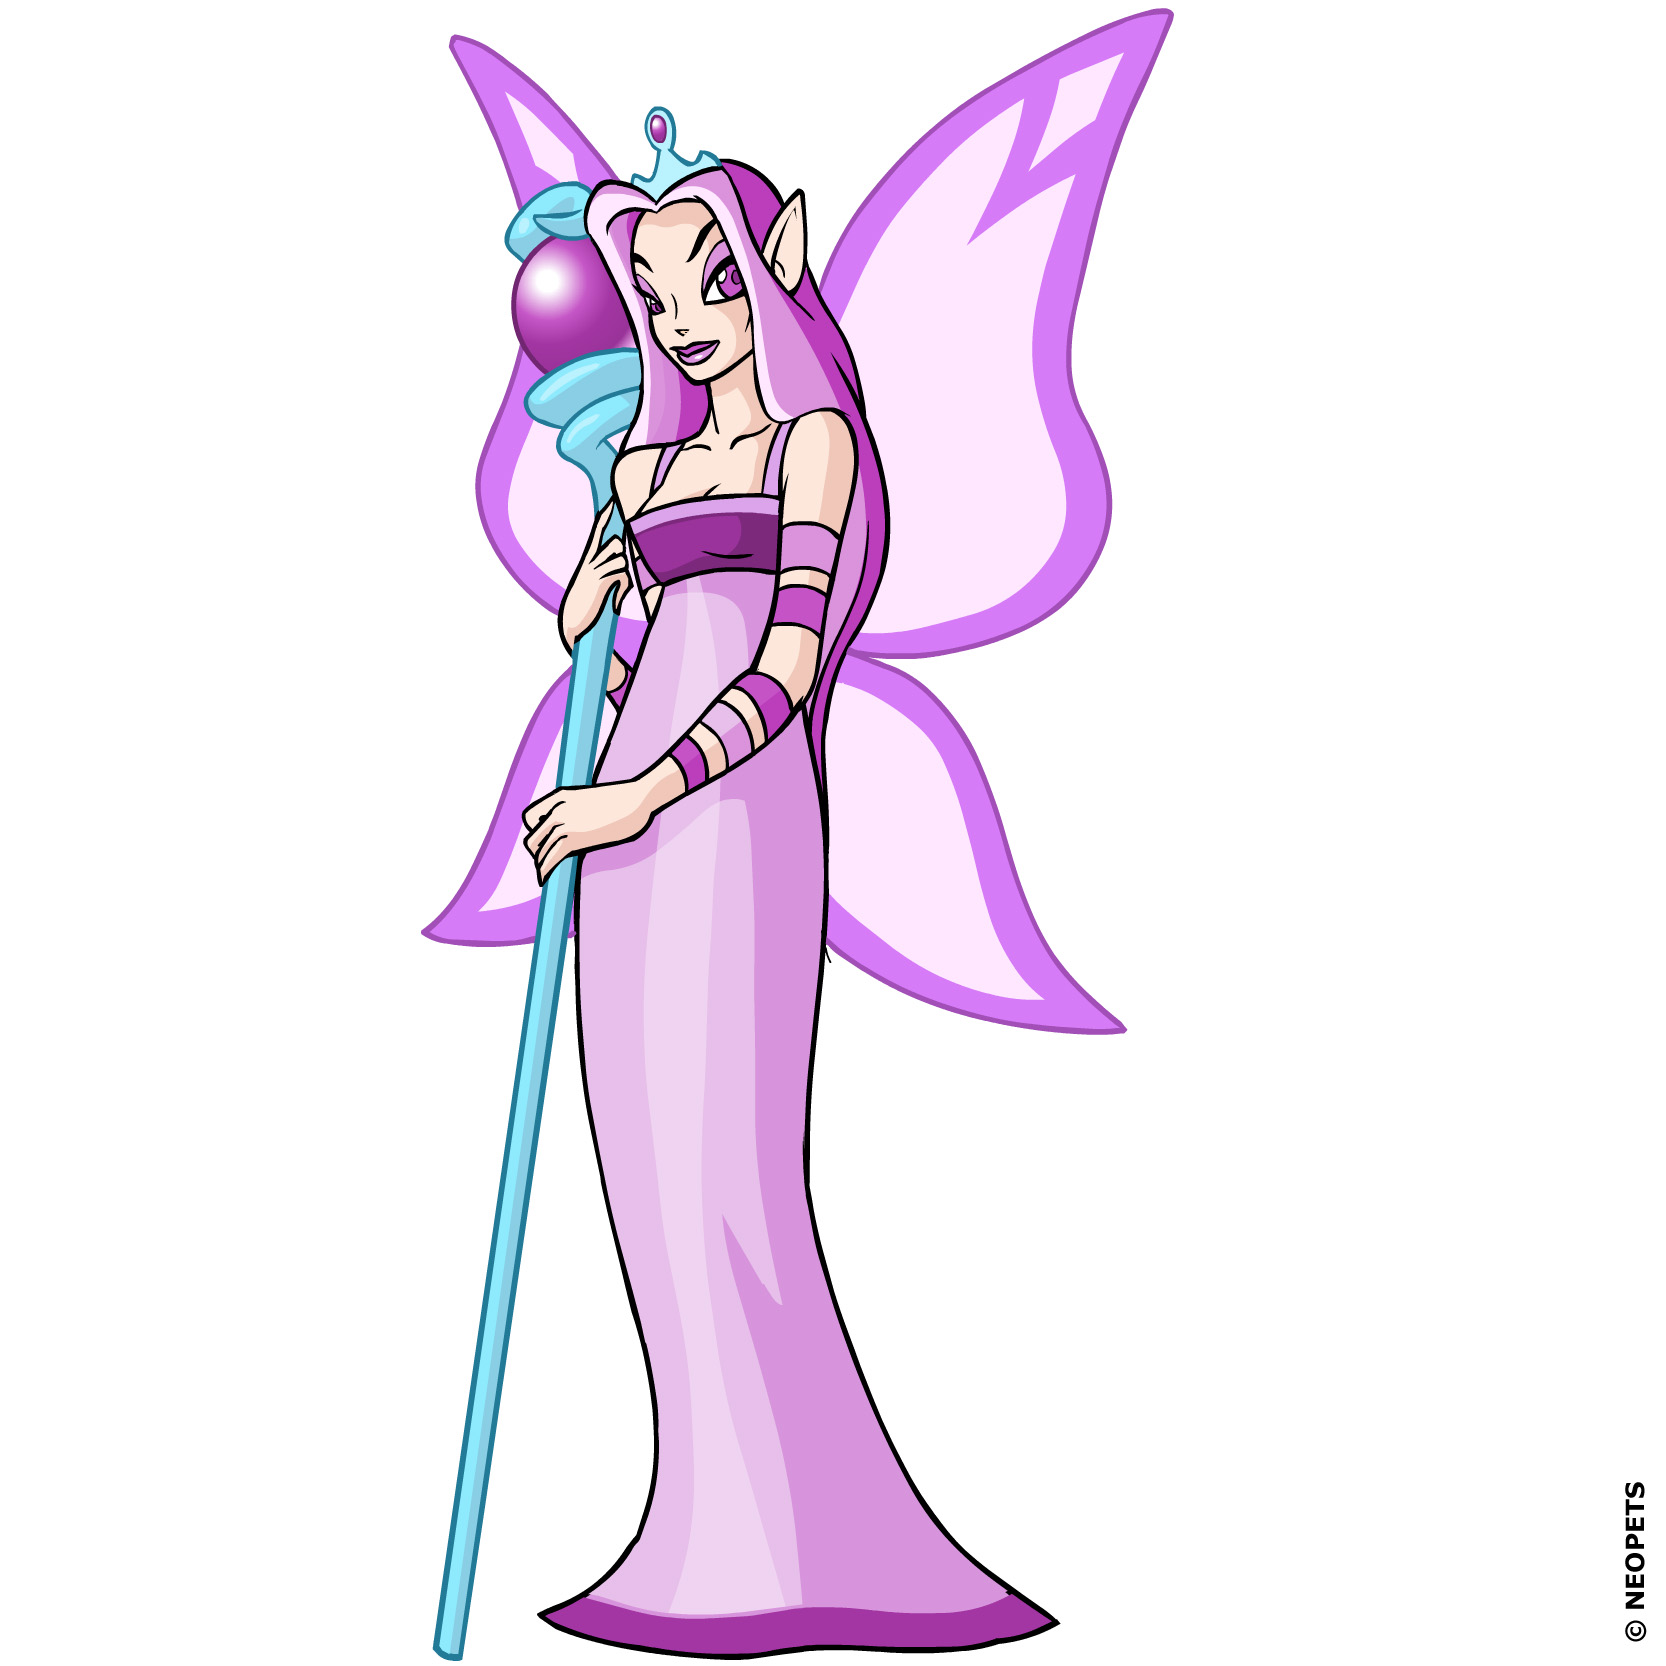 http://images.neopets.com/press/faerie_1.jpg